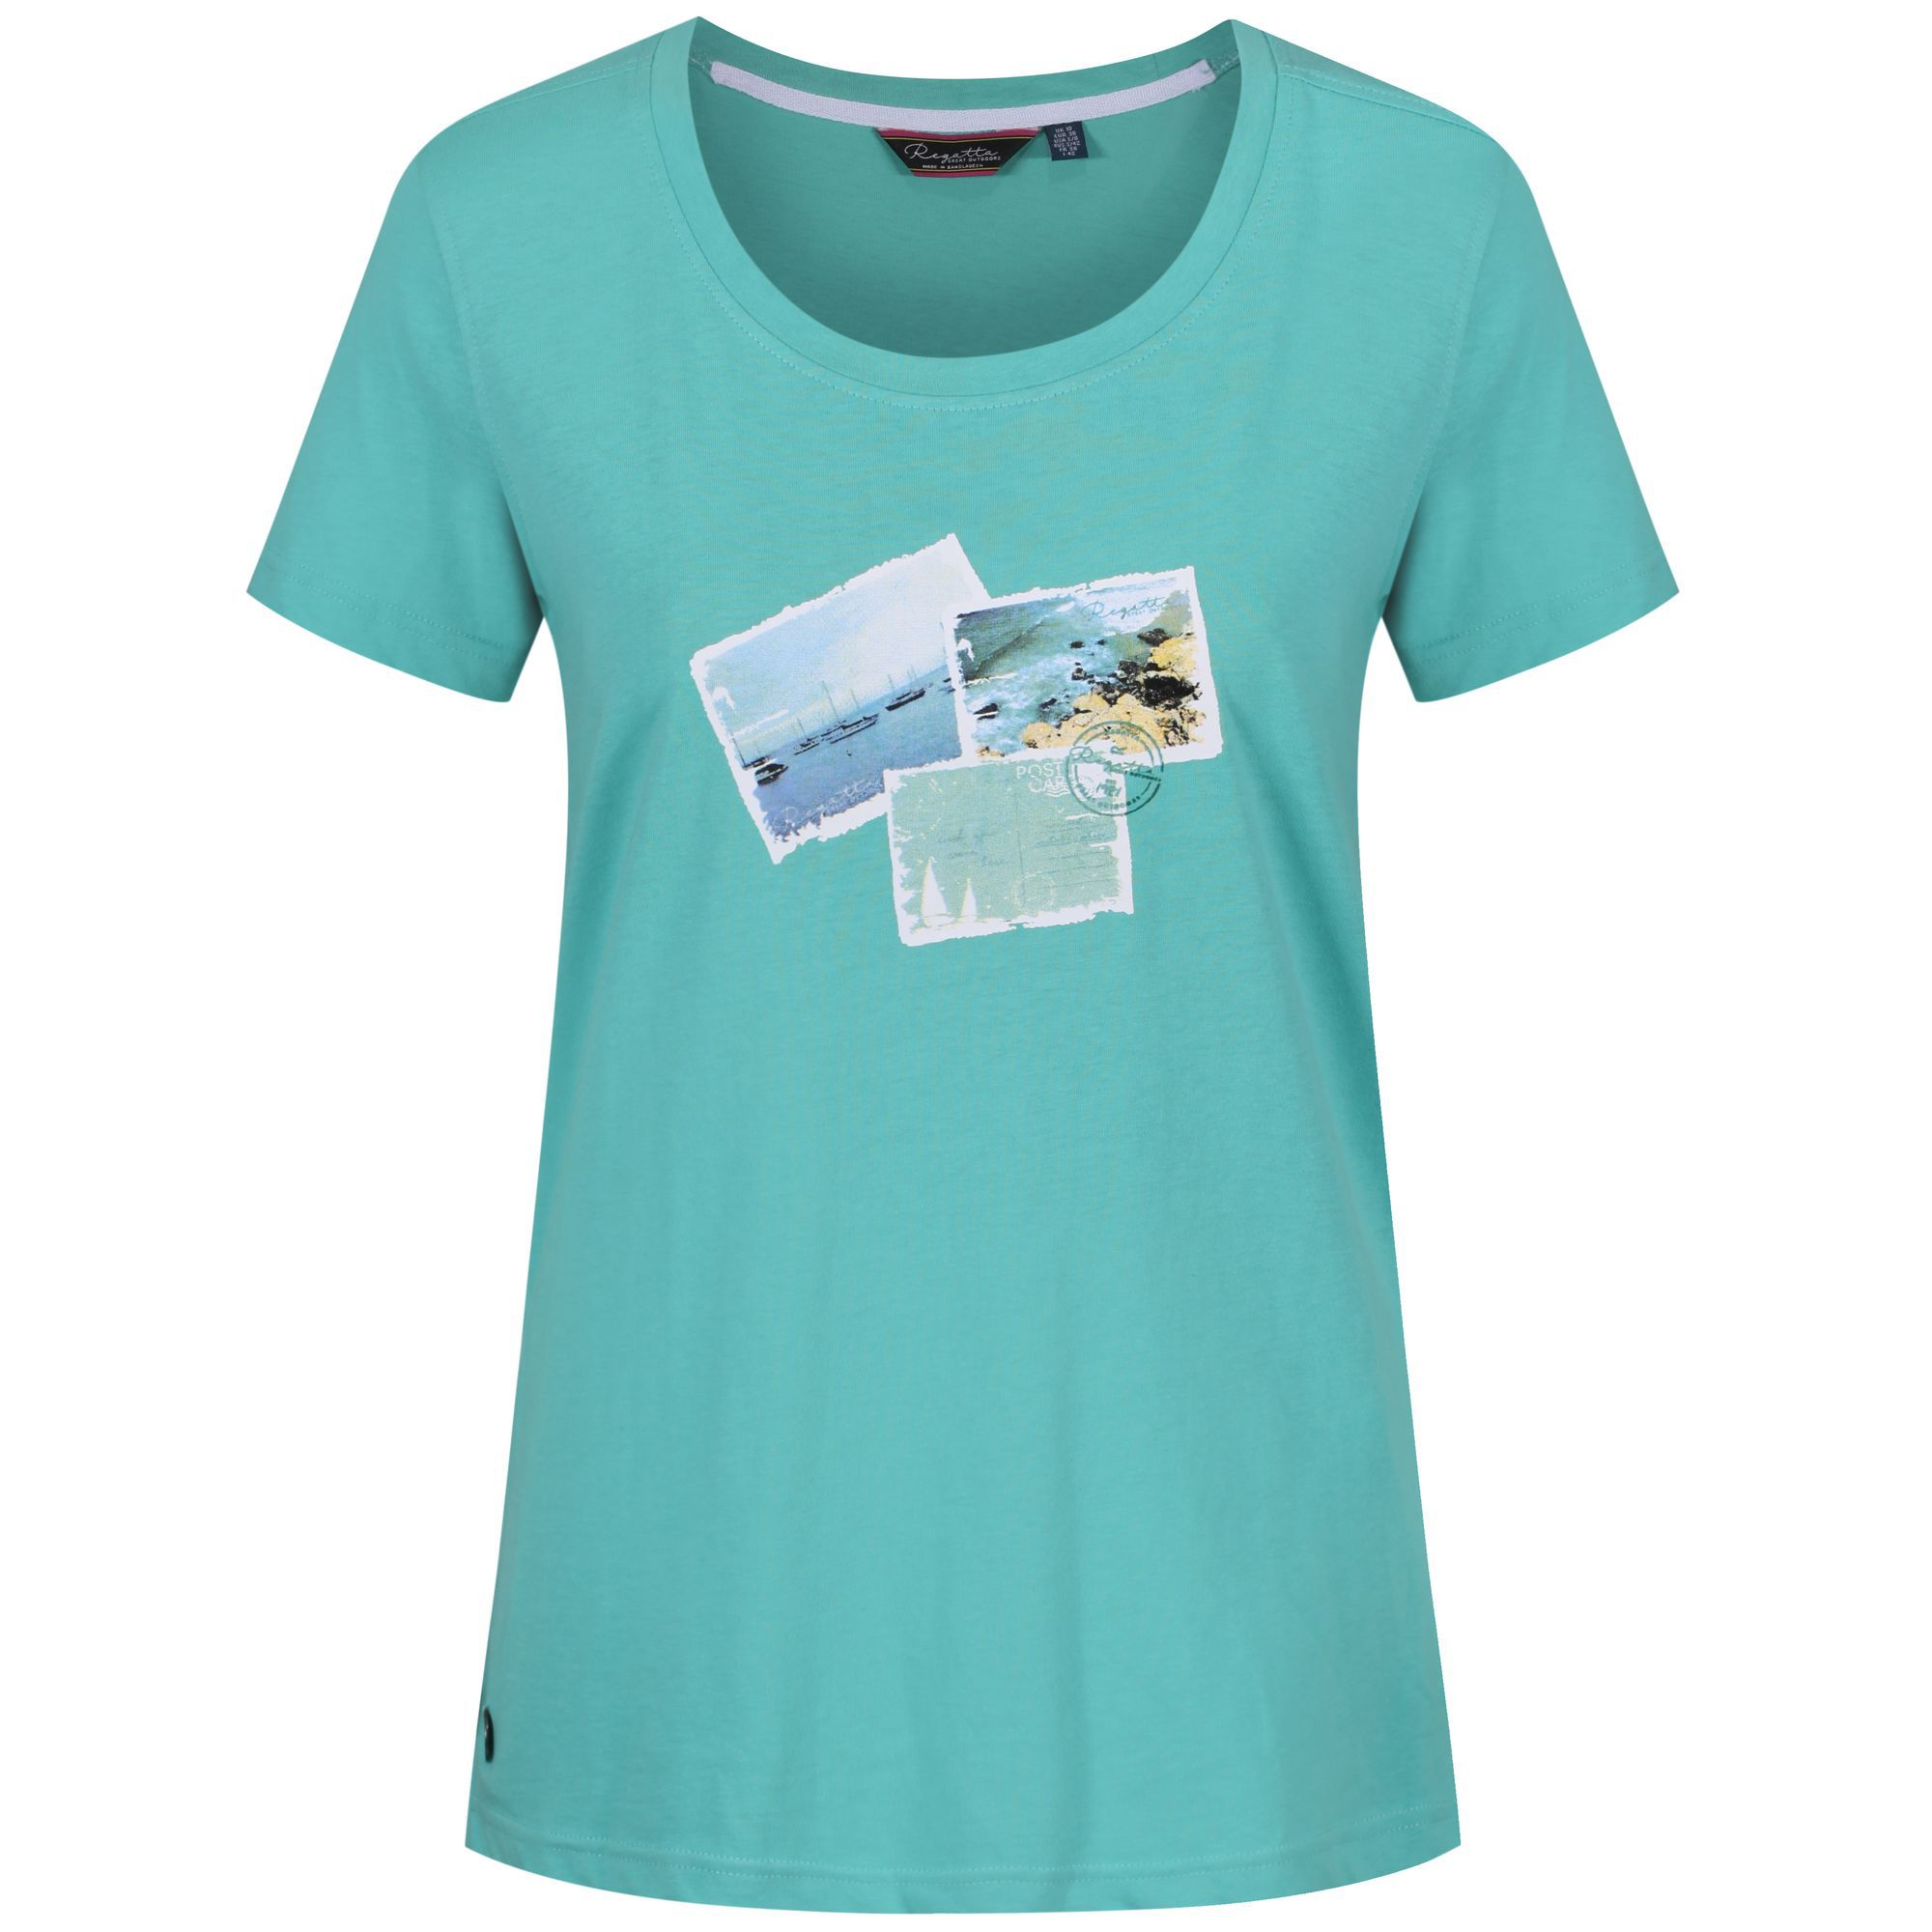 Regatta Filandra Cotton Print T-Shirt, Jade